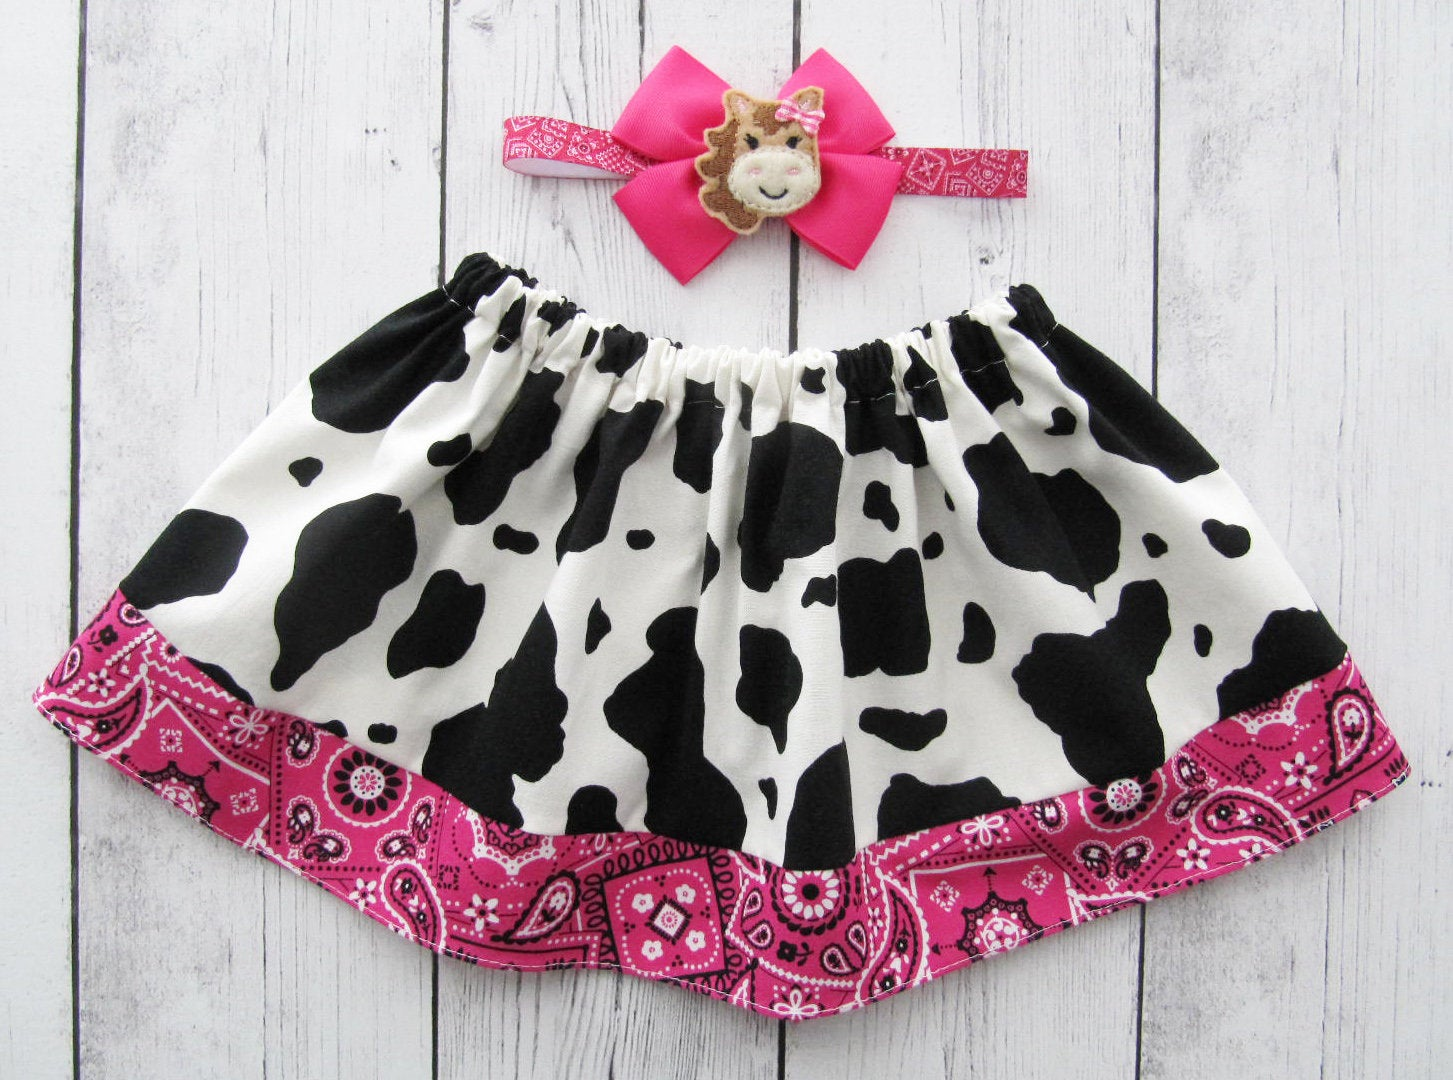 Cowgirl Skirt for baby girl - cow skirt, barnyard birthday, cow birthday, cow halloween costume, cow skirt girl, baby girl skirt, cowgirl